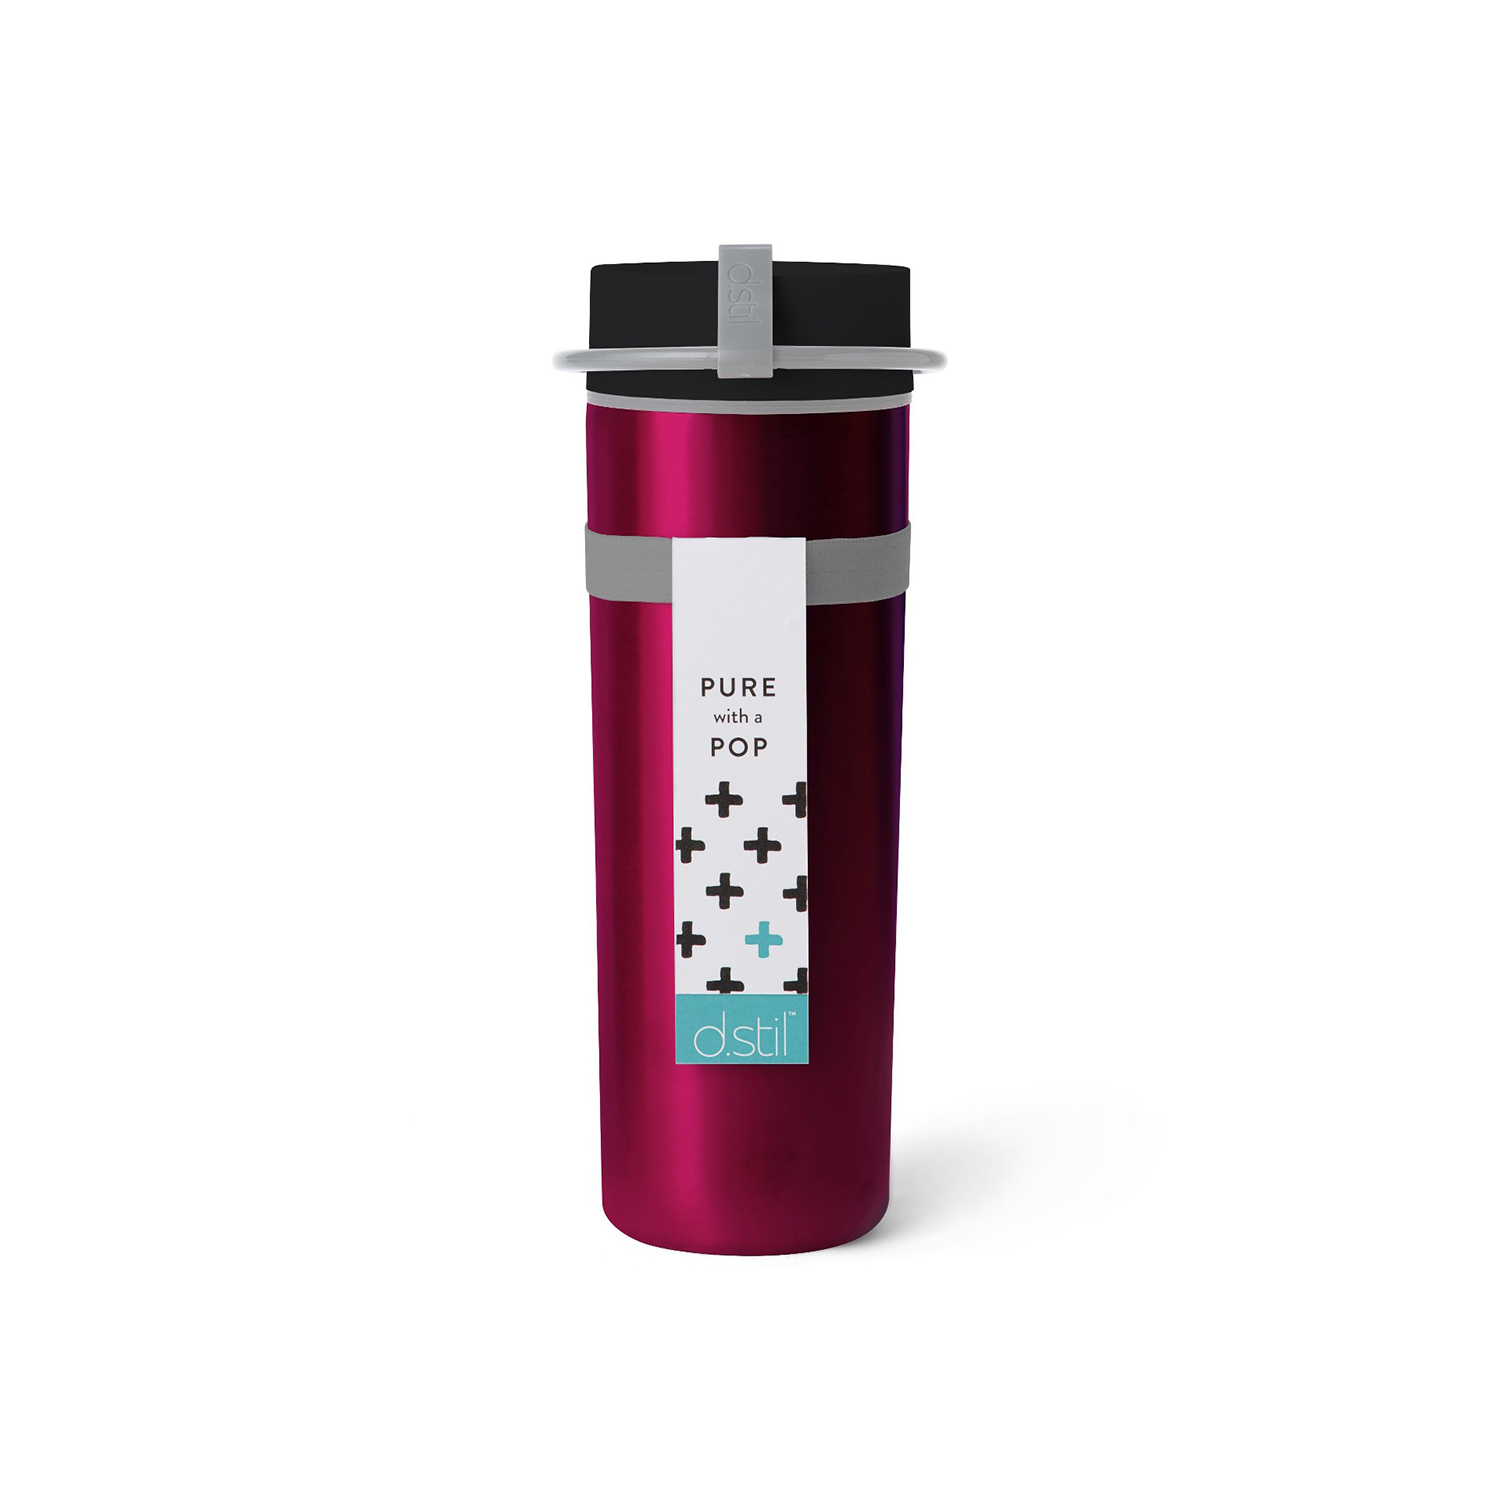 d.stil 16-ounce Stainless Steel Insulated Tumbler